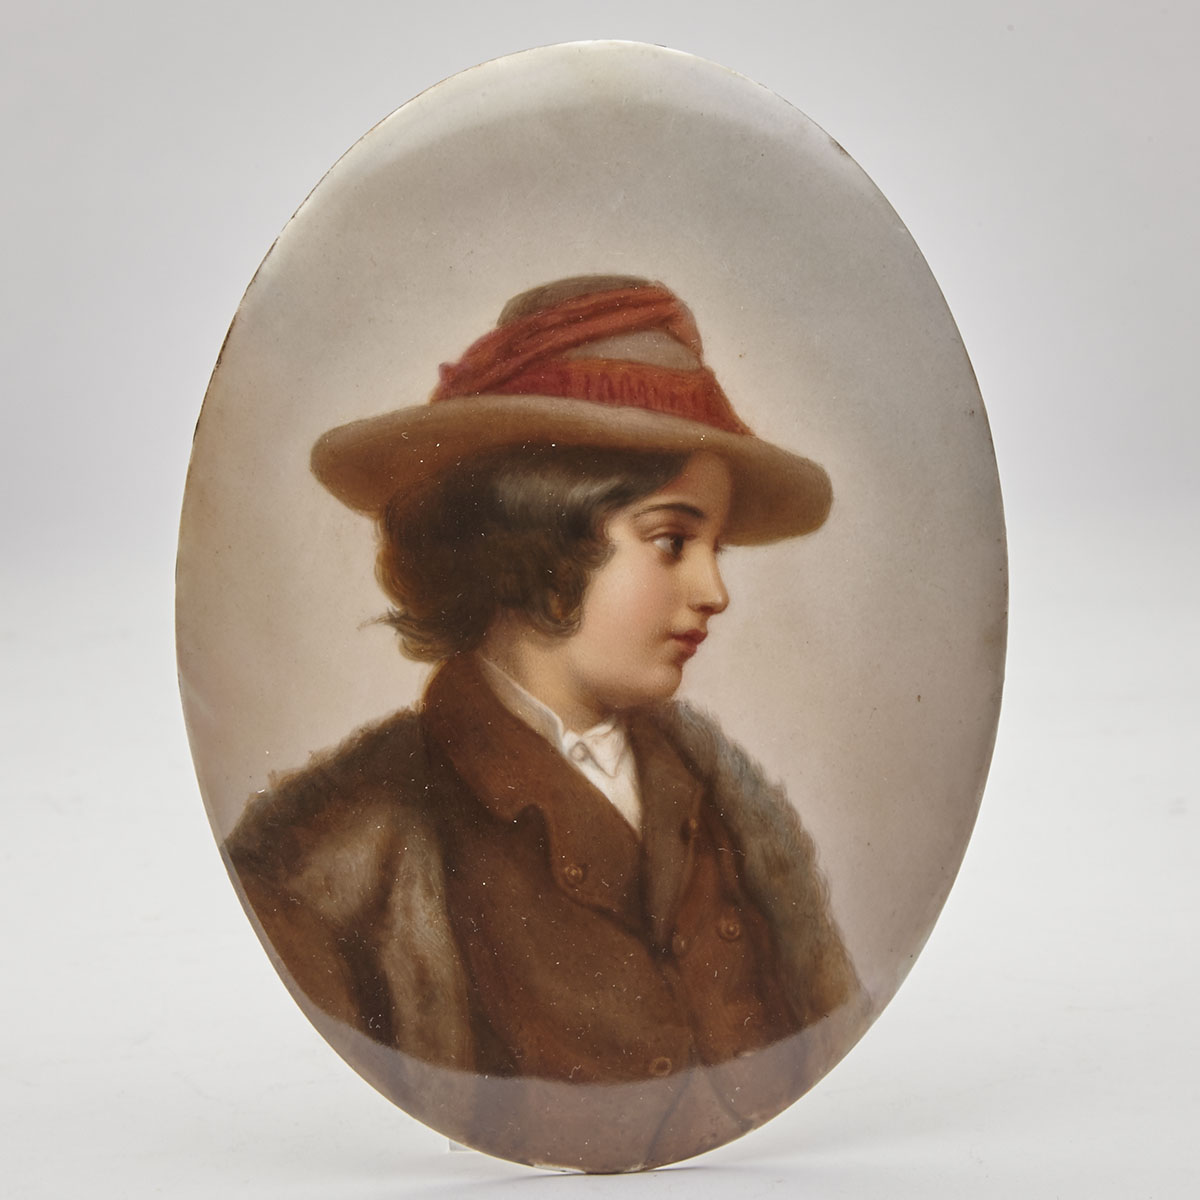 Berlin Oval Portrait Plaque of a Boy, late 19th century